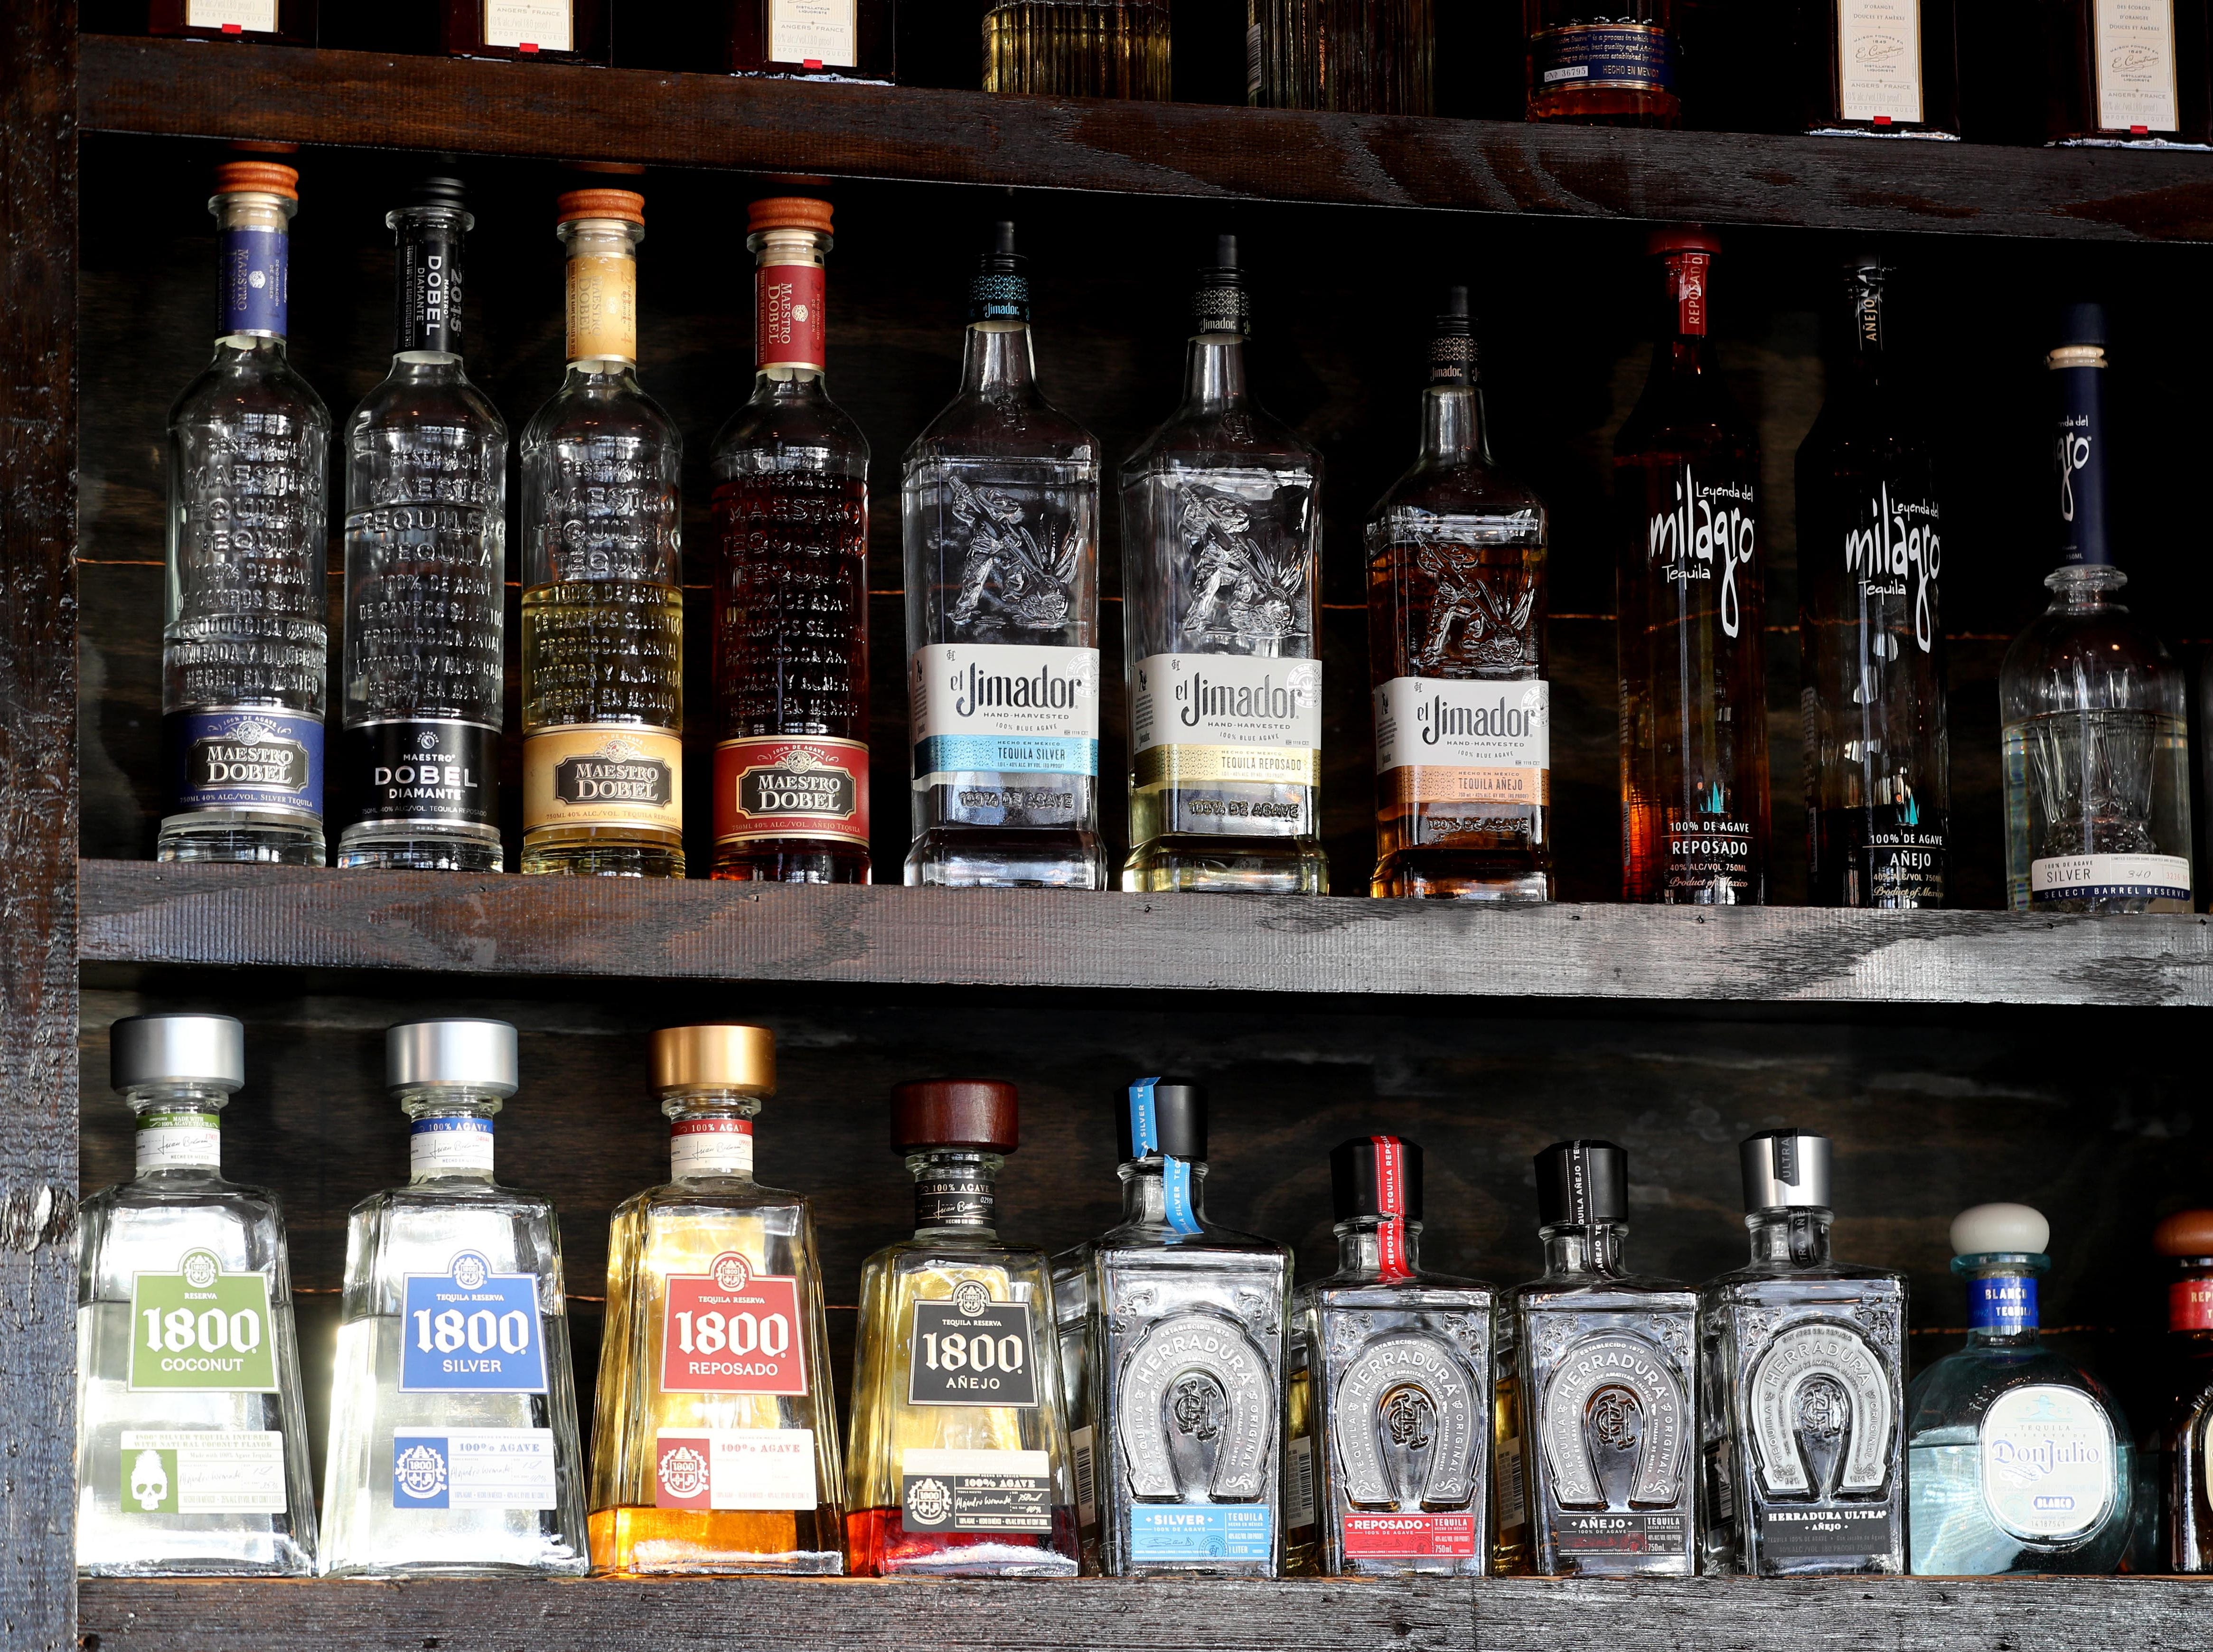 A selection of tequilas at Margarita at Taco Dive Bar in Peekskill, photographed Feb. 13, 2019. Taco Dive Bar offers over fifty different tequilas. National Margarita Day is Feb. 22nd.